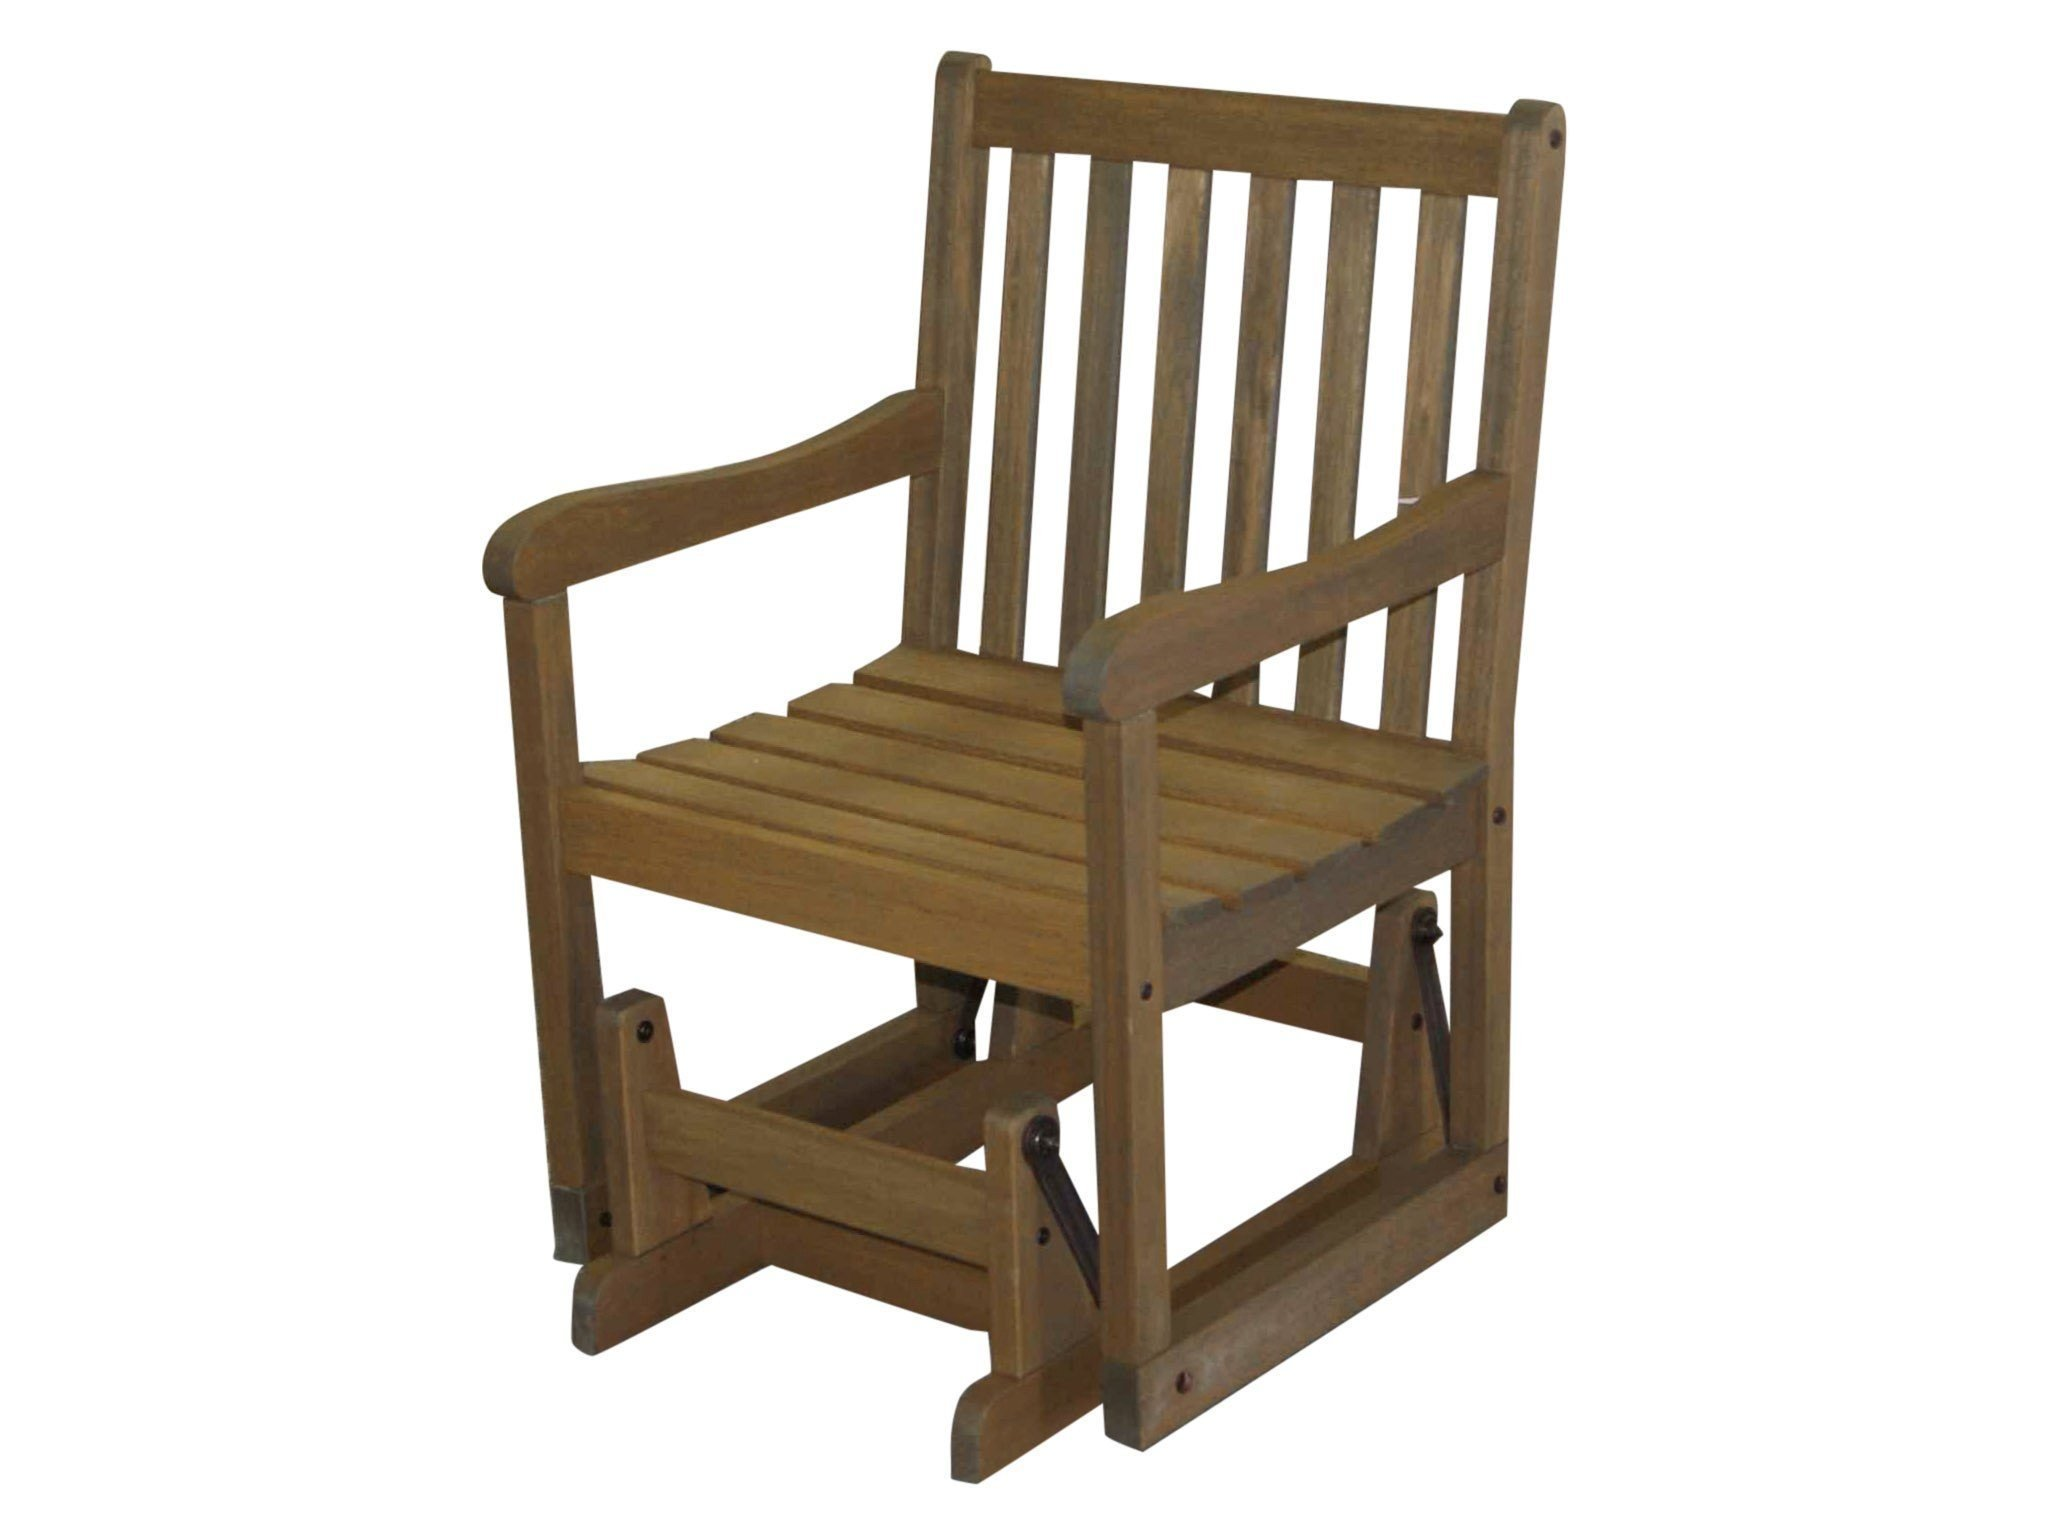 Timbo Vila Rica Hardwood Outdoor Patio Glider, Glider, Brown by Timbo